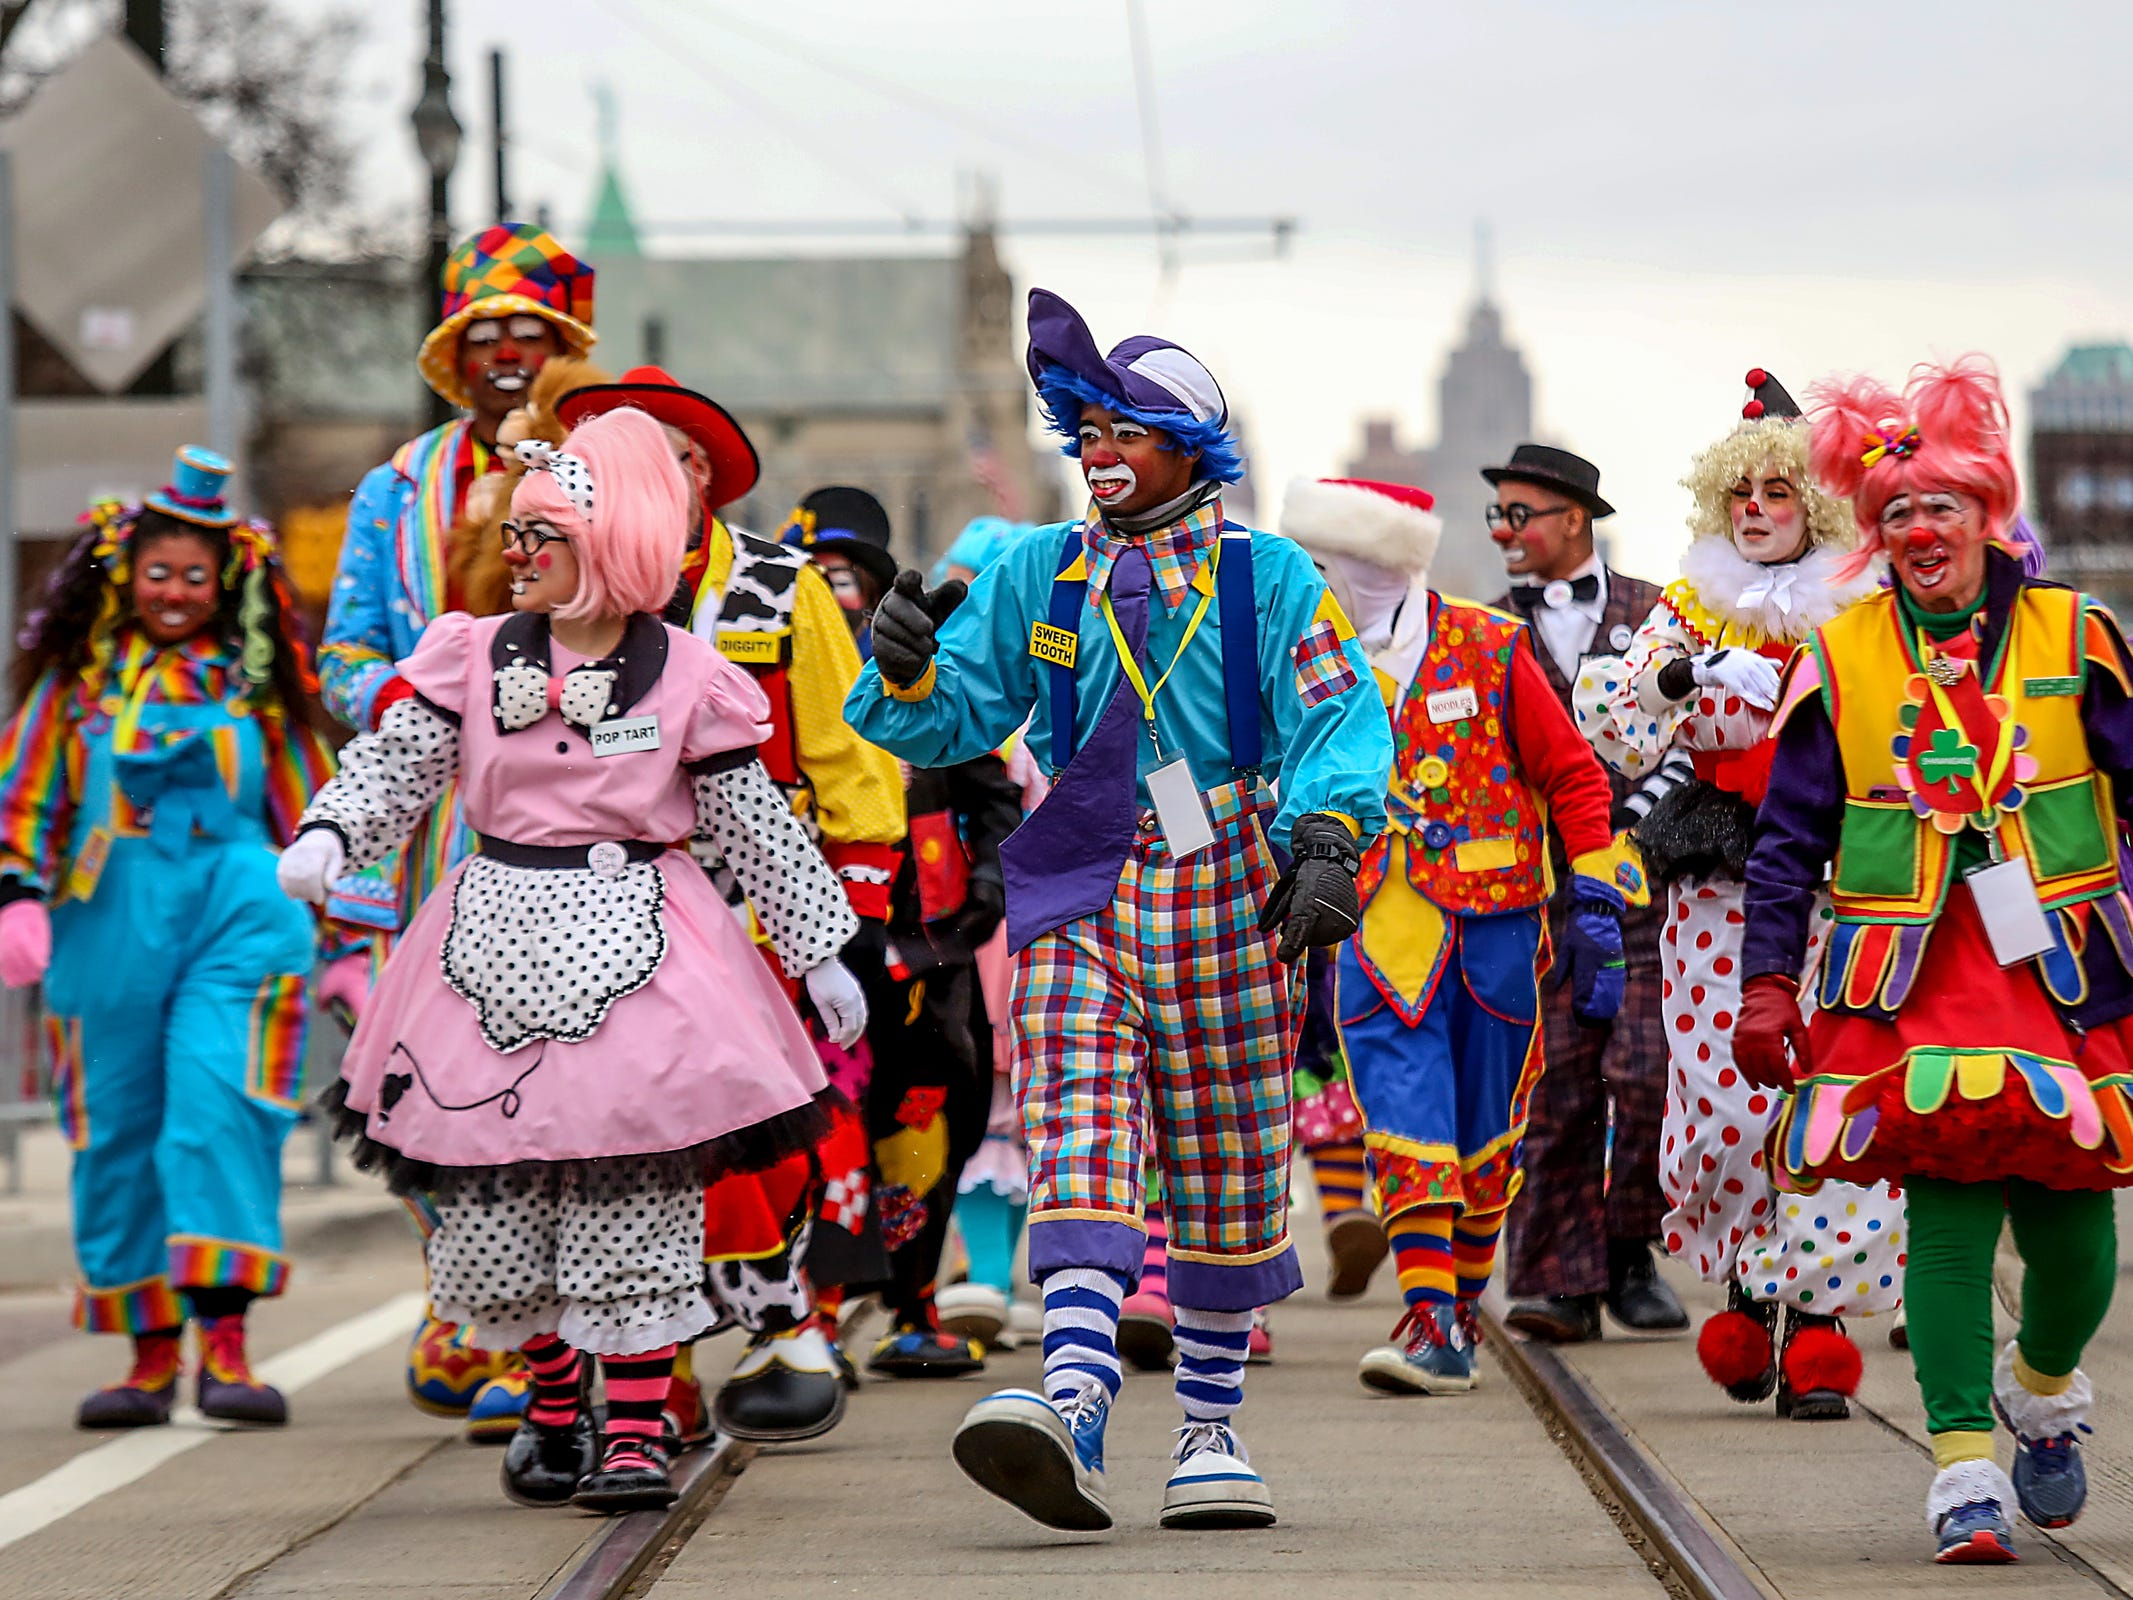 Mott Campus Clowns, of Mott Community College participate in America's Thanksgiving Parade in Detroit on Thursday, Nov. 22, 2018.